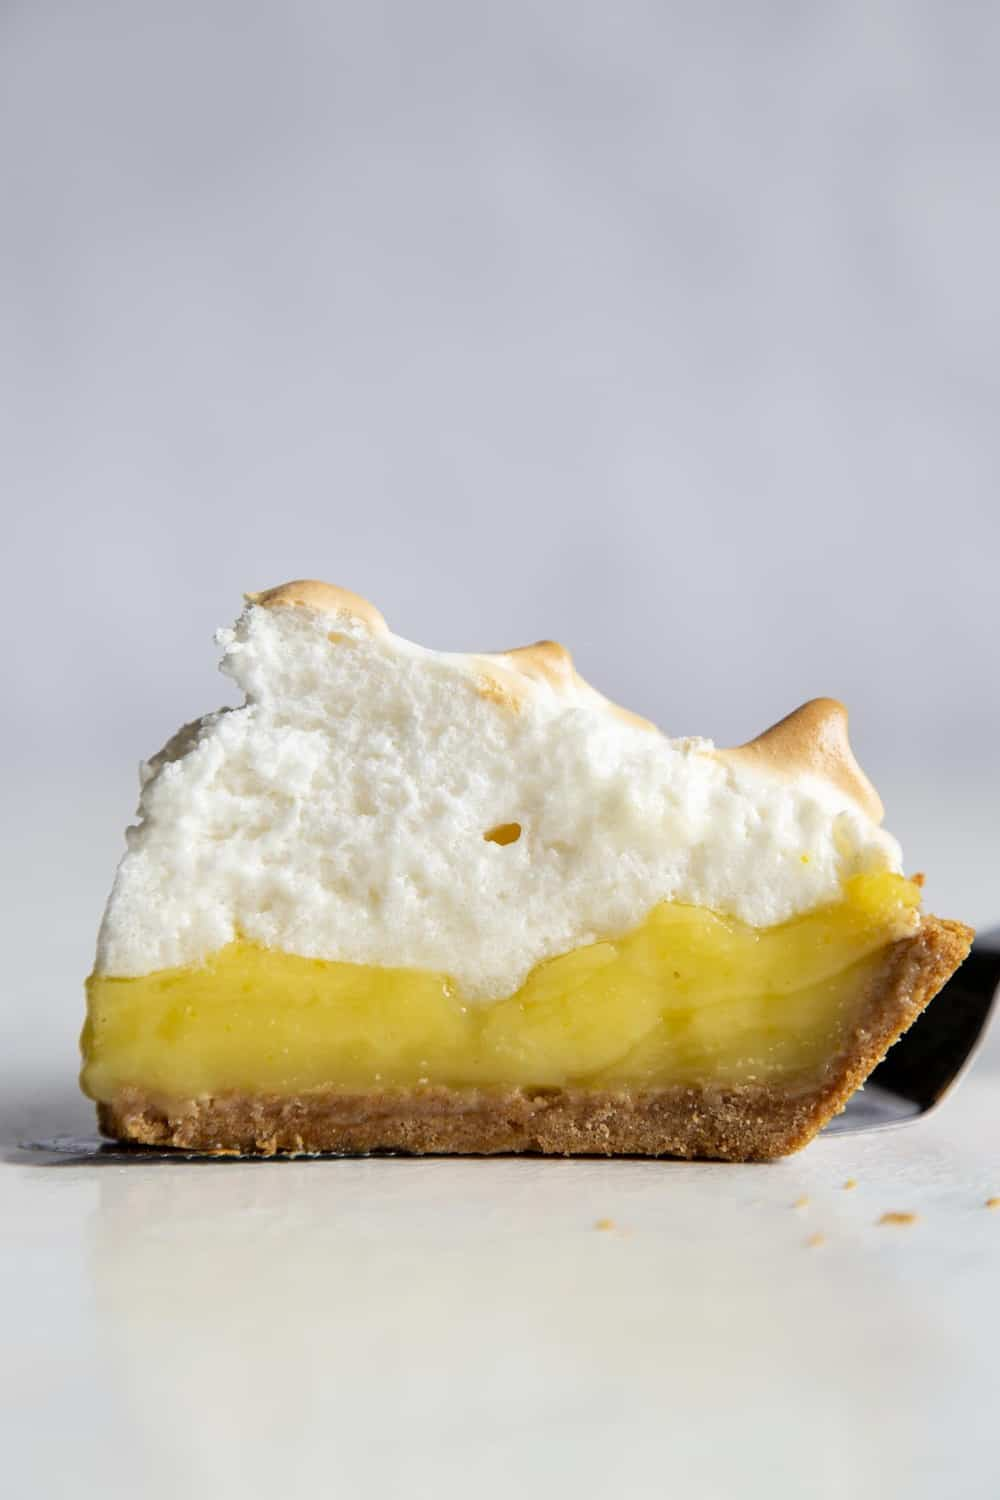 A side view of the layers of lemon and meringue in the slice of pie.